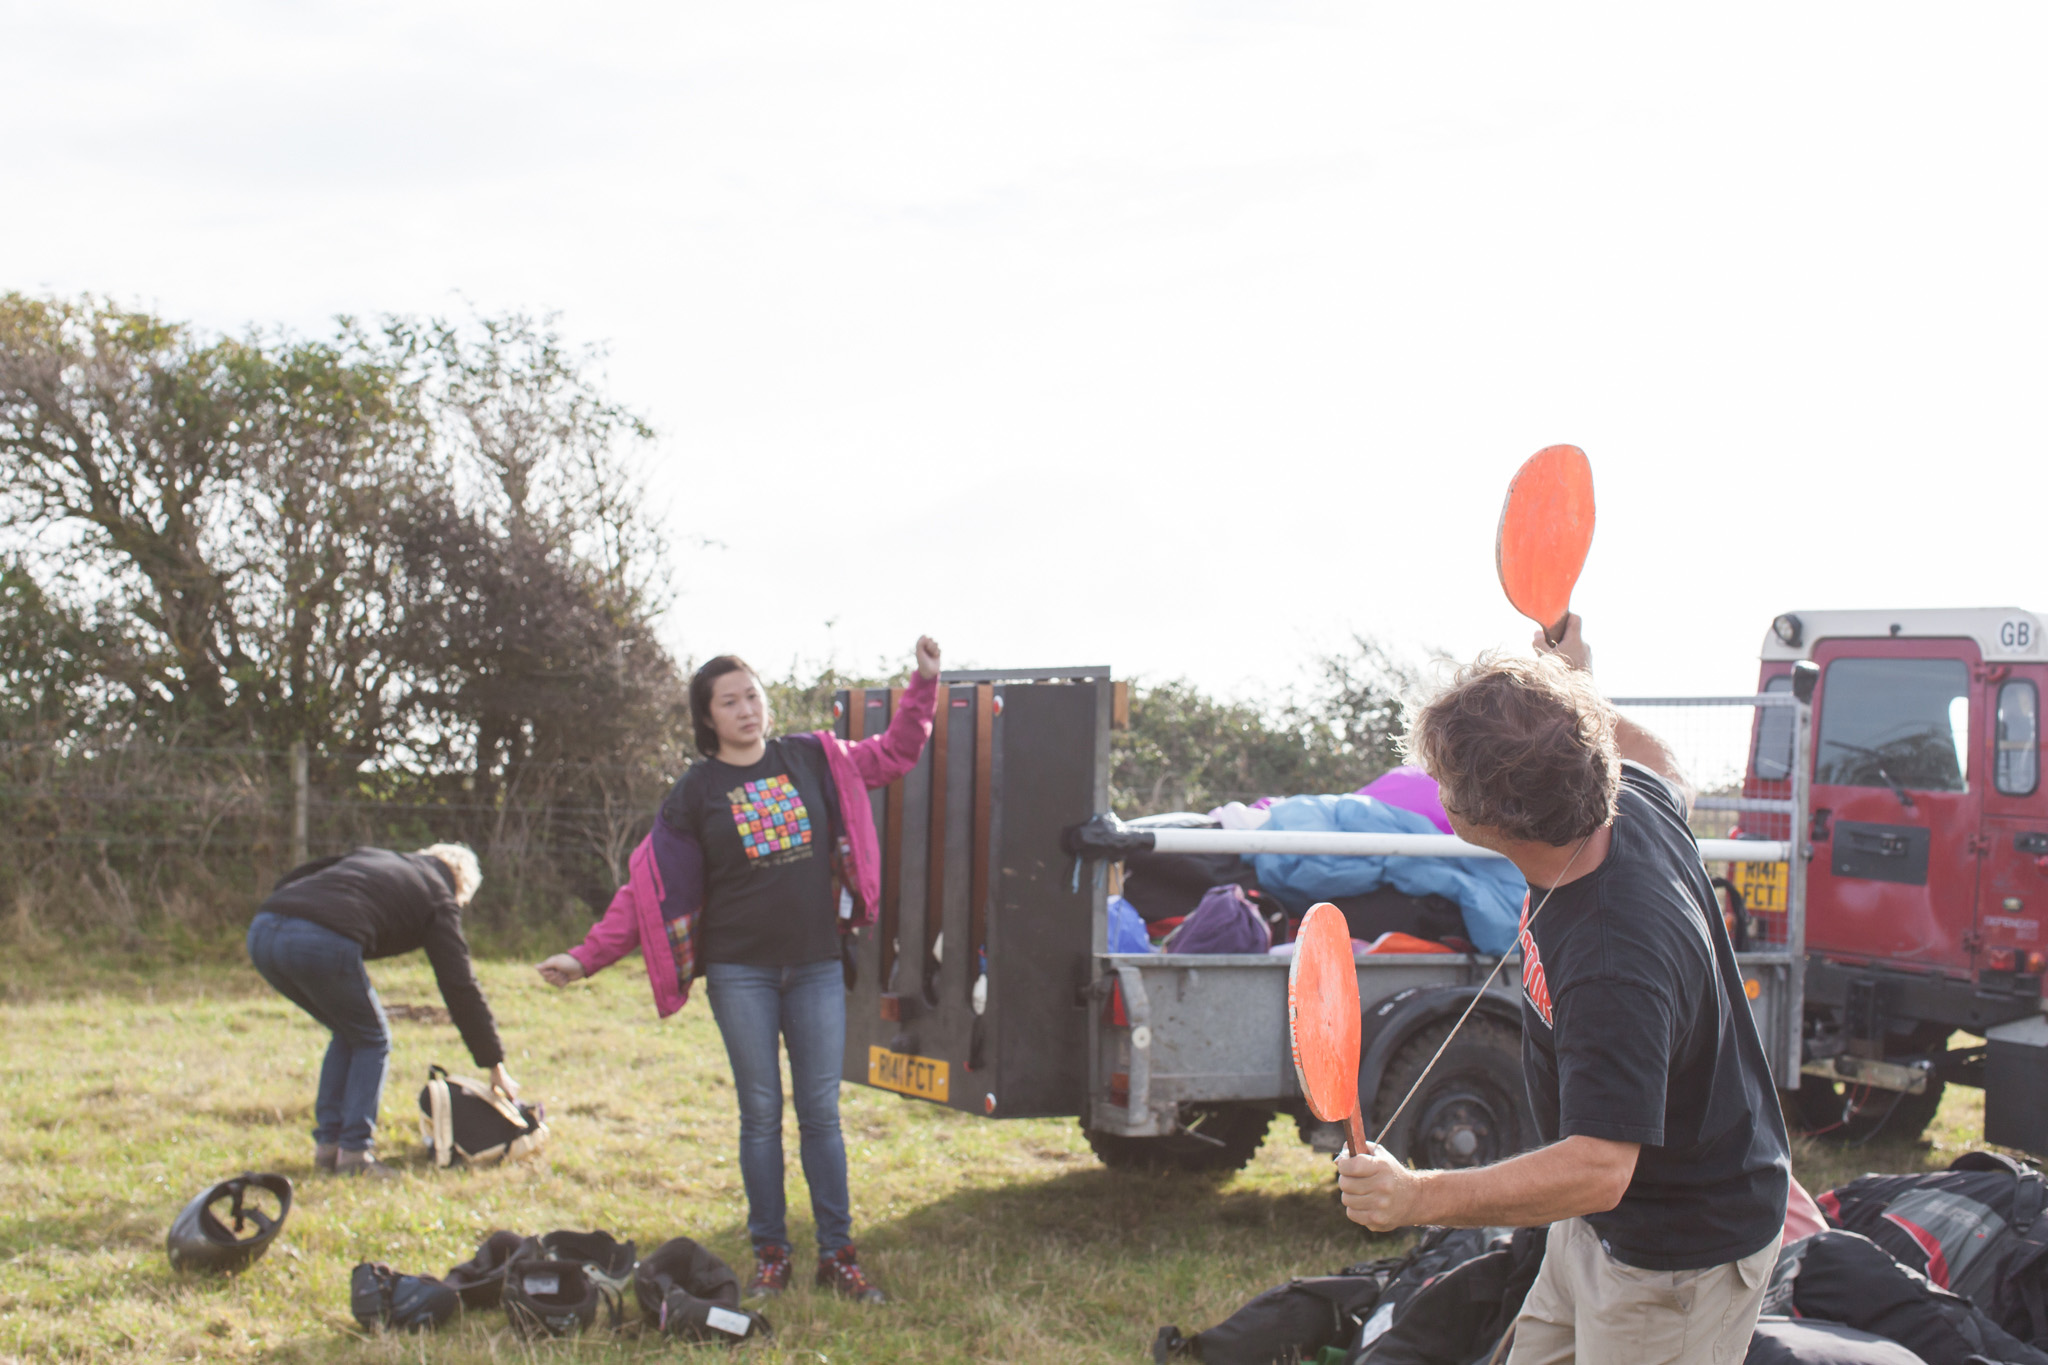 A photo story of a day with Fly Sussex where beginners learn to paraglide captured by lifestyle photographer Emma Gutteridge